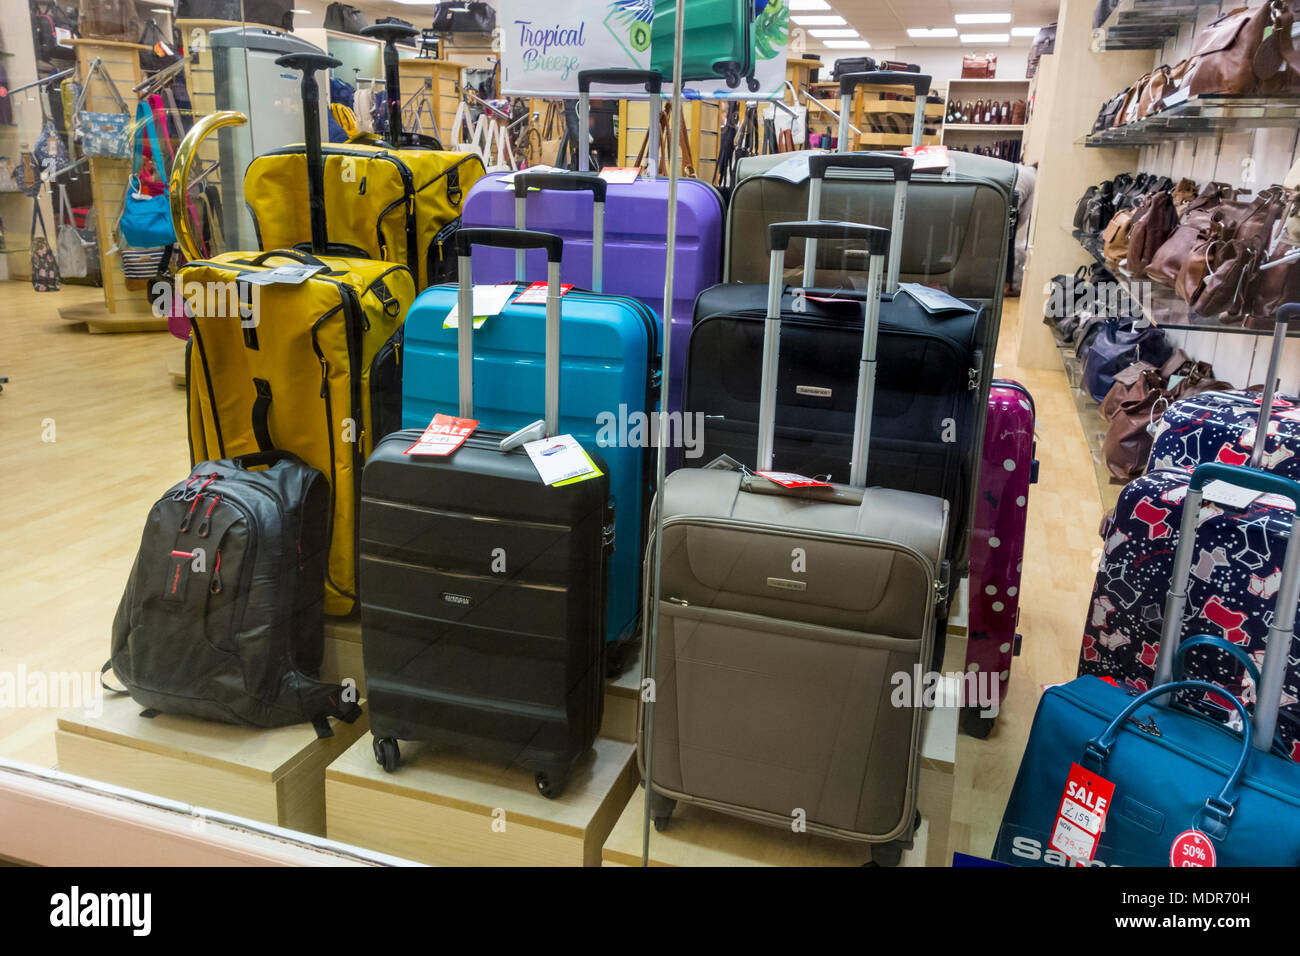 luggage on display stock photos luggage on display stock images alamy. Black Bedroom Furniture Sets. Home Design Ideas